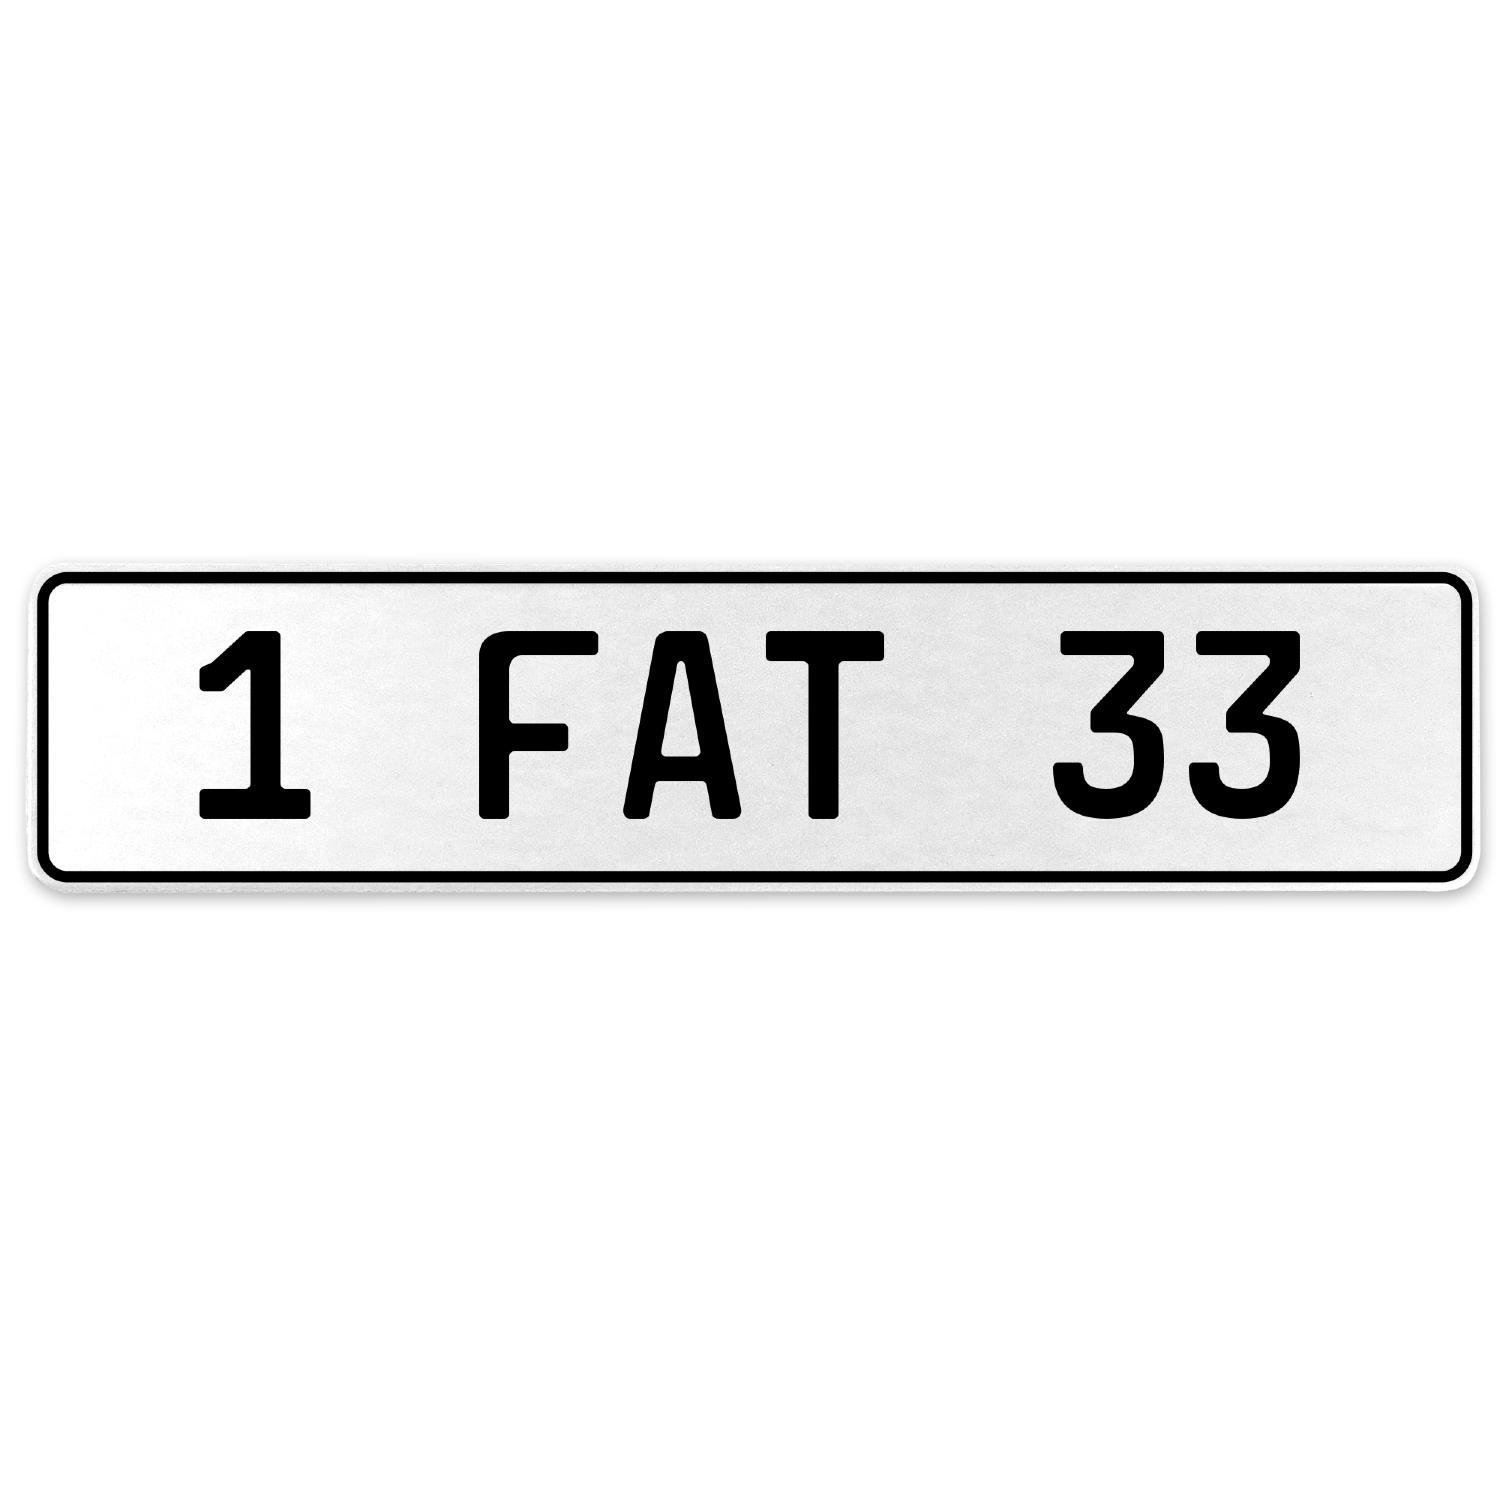 Vintage Parts 554630 1 Fat 33 White Stamped Aluminum European License Plate